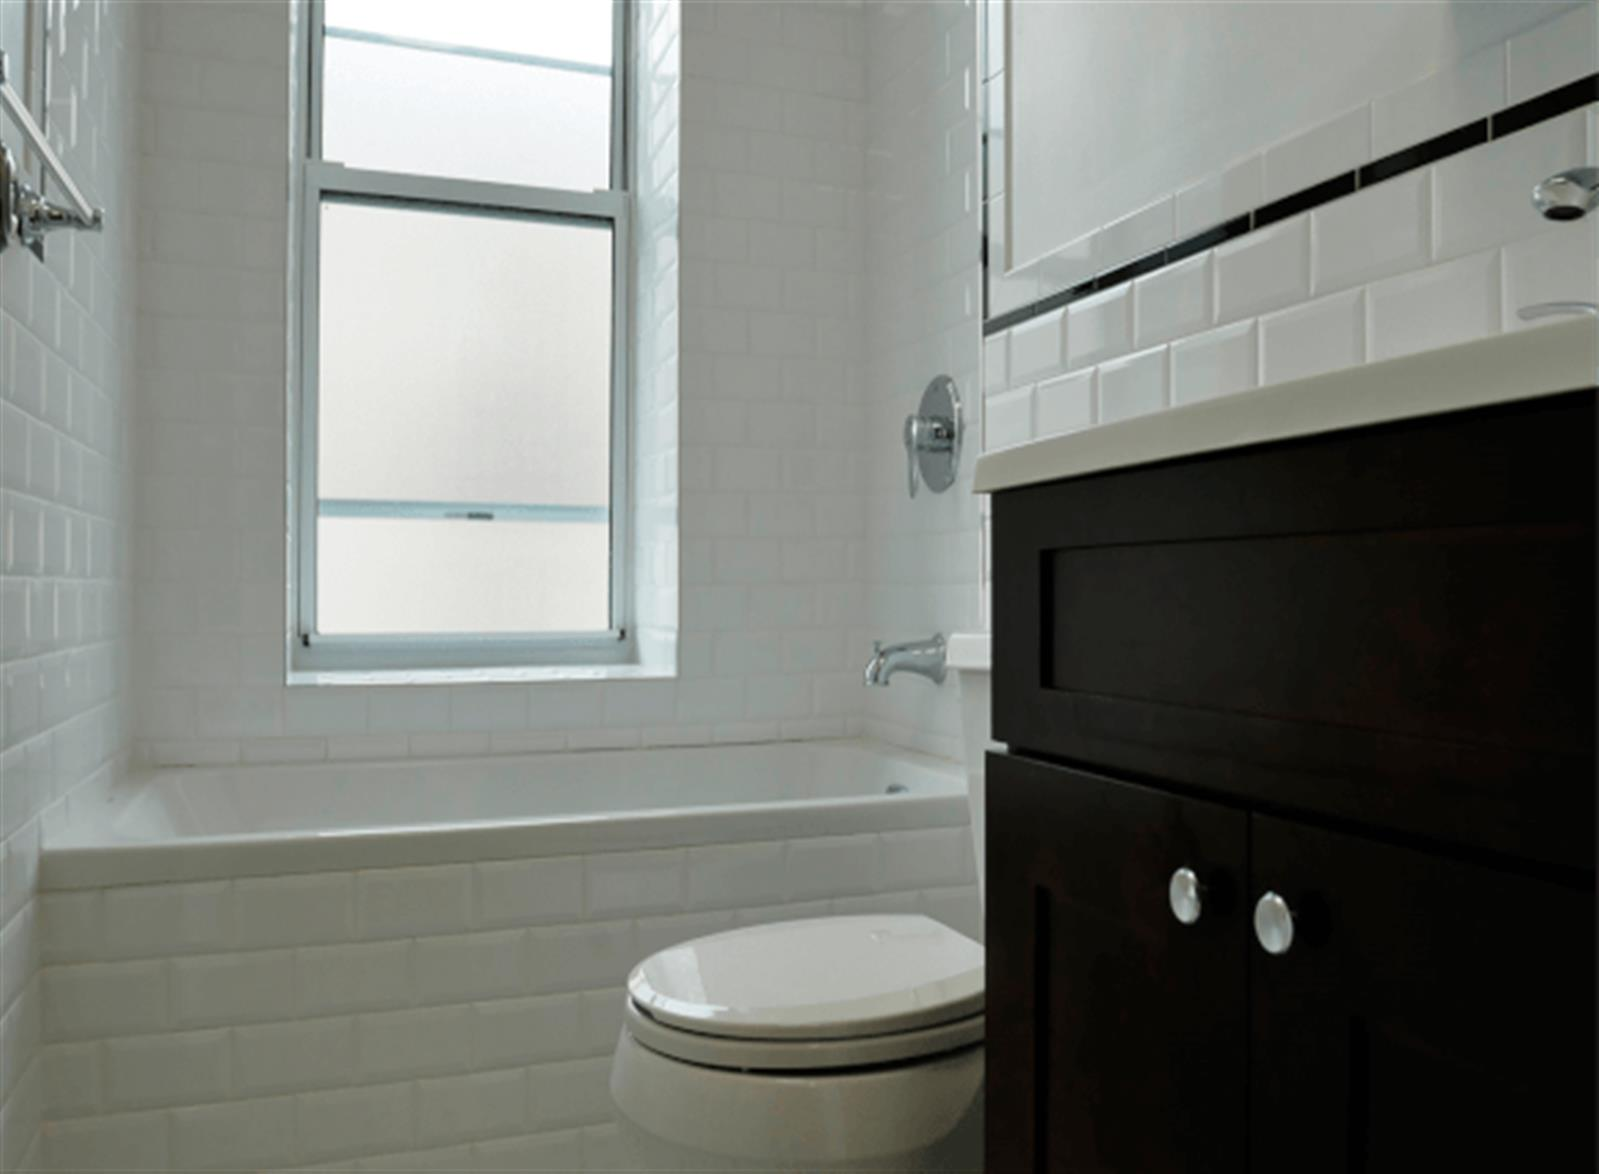 Comfortable 1BD bet. W 175th & 176th streets